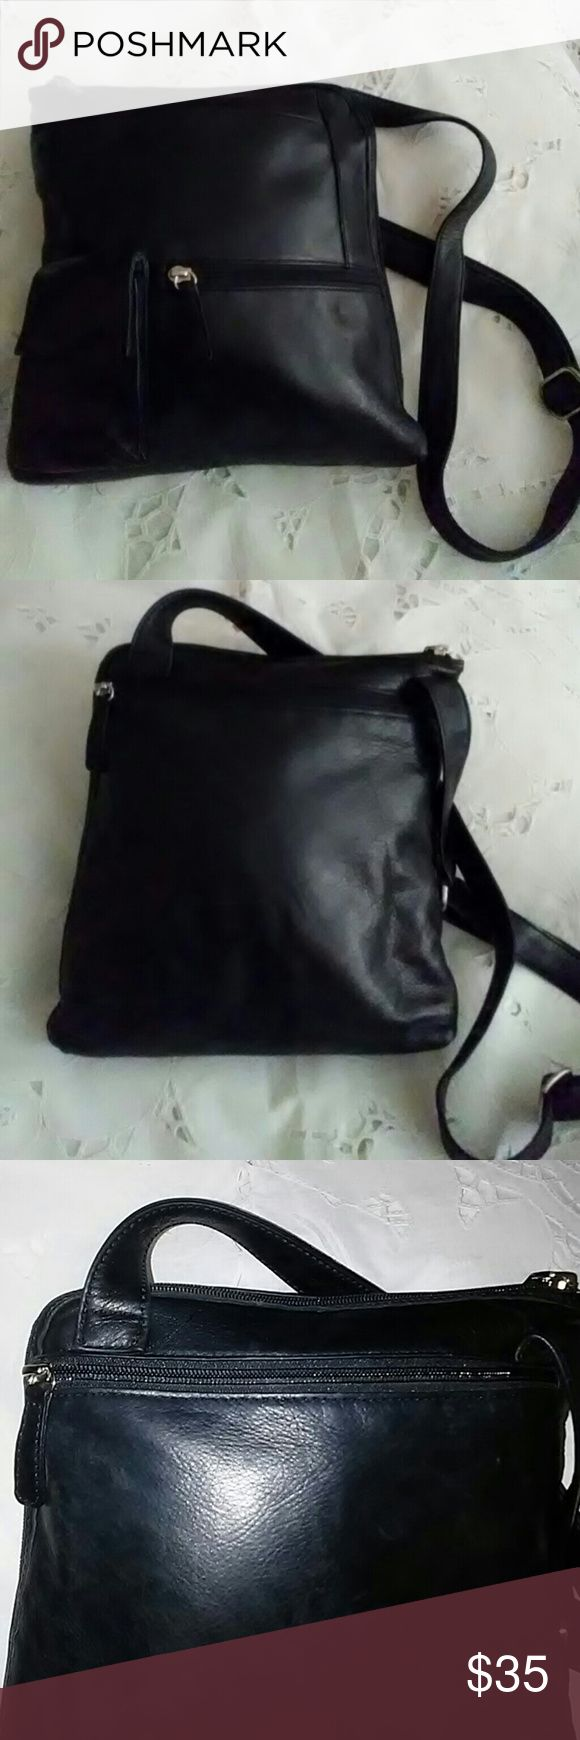 Osgoode Marley Large Crossbody Bag Soft Black Leather Crossbody Bag. Large back pocket, multiple compartments. Perfect stylish Crossbody Bag for vacation. Osgoode Marley Bags Crossbody Bags